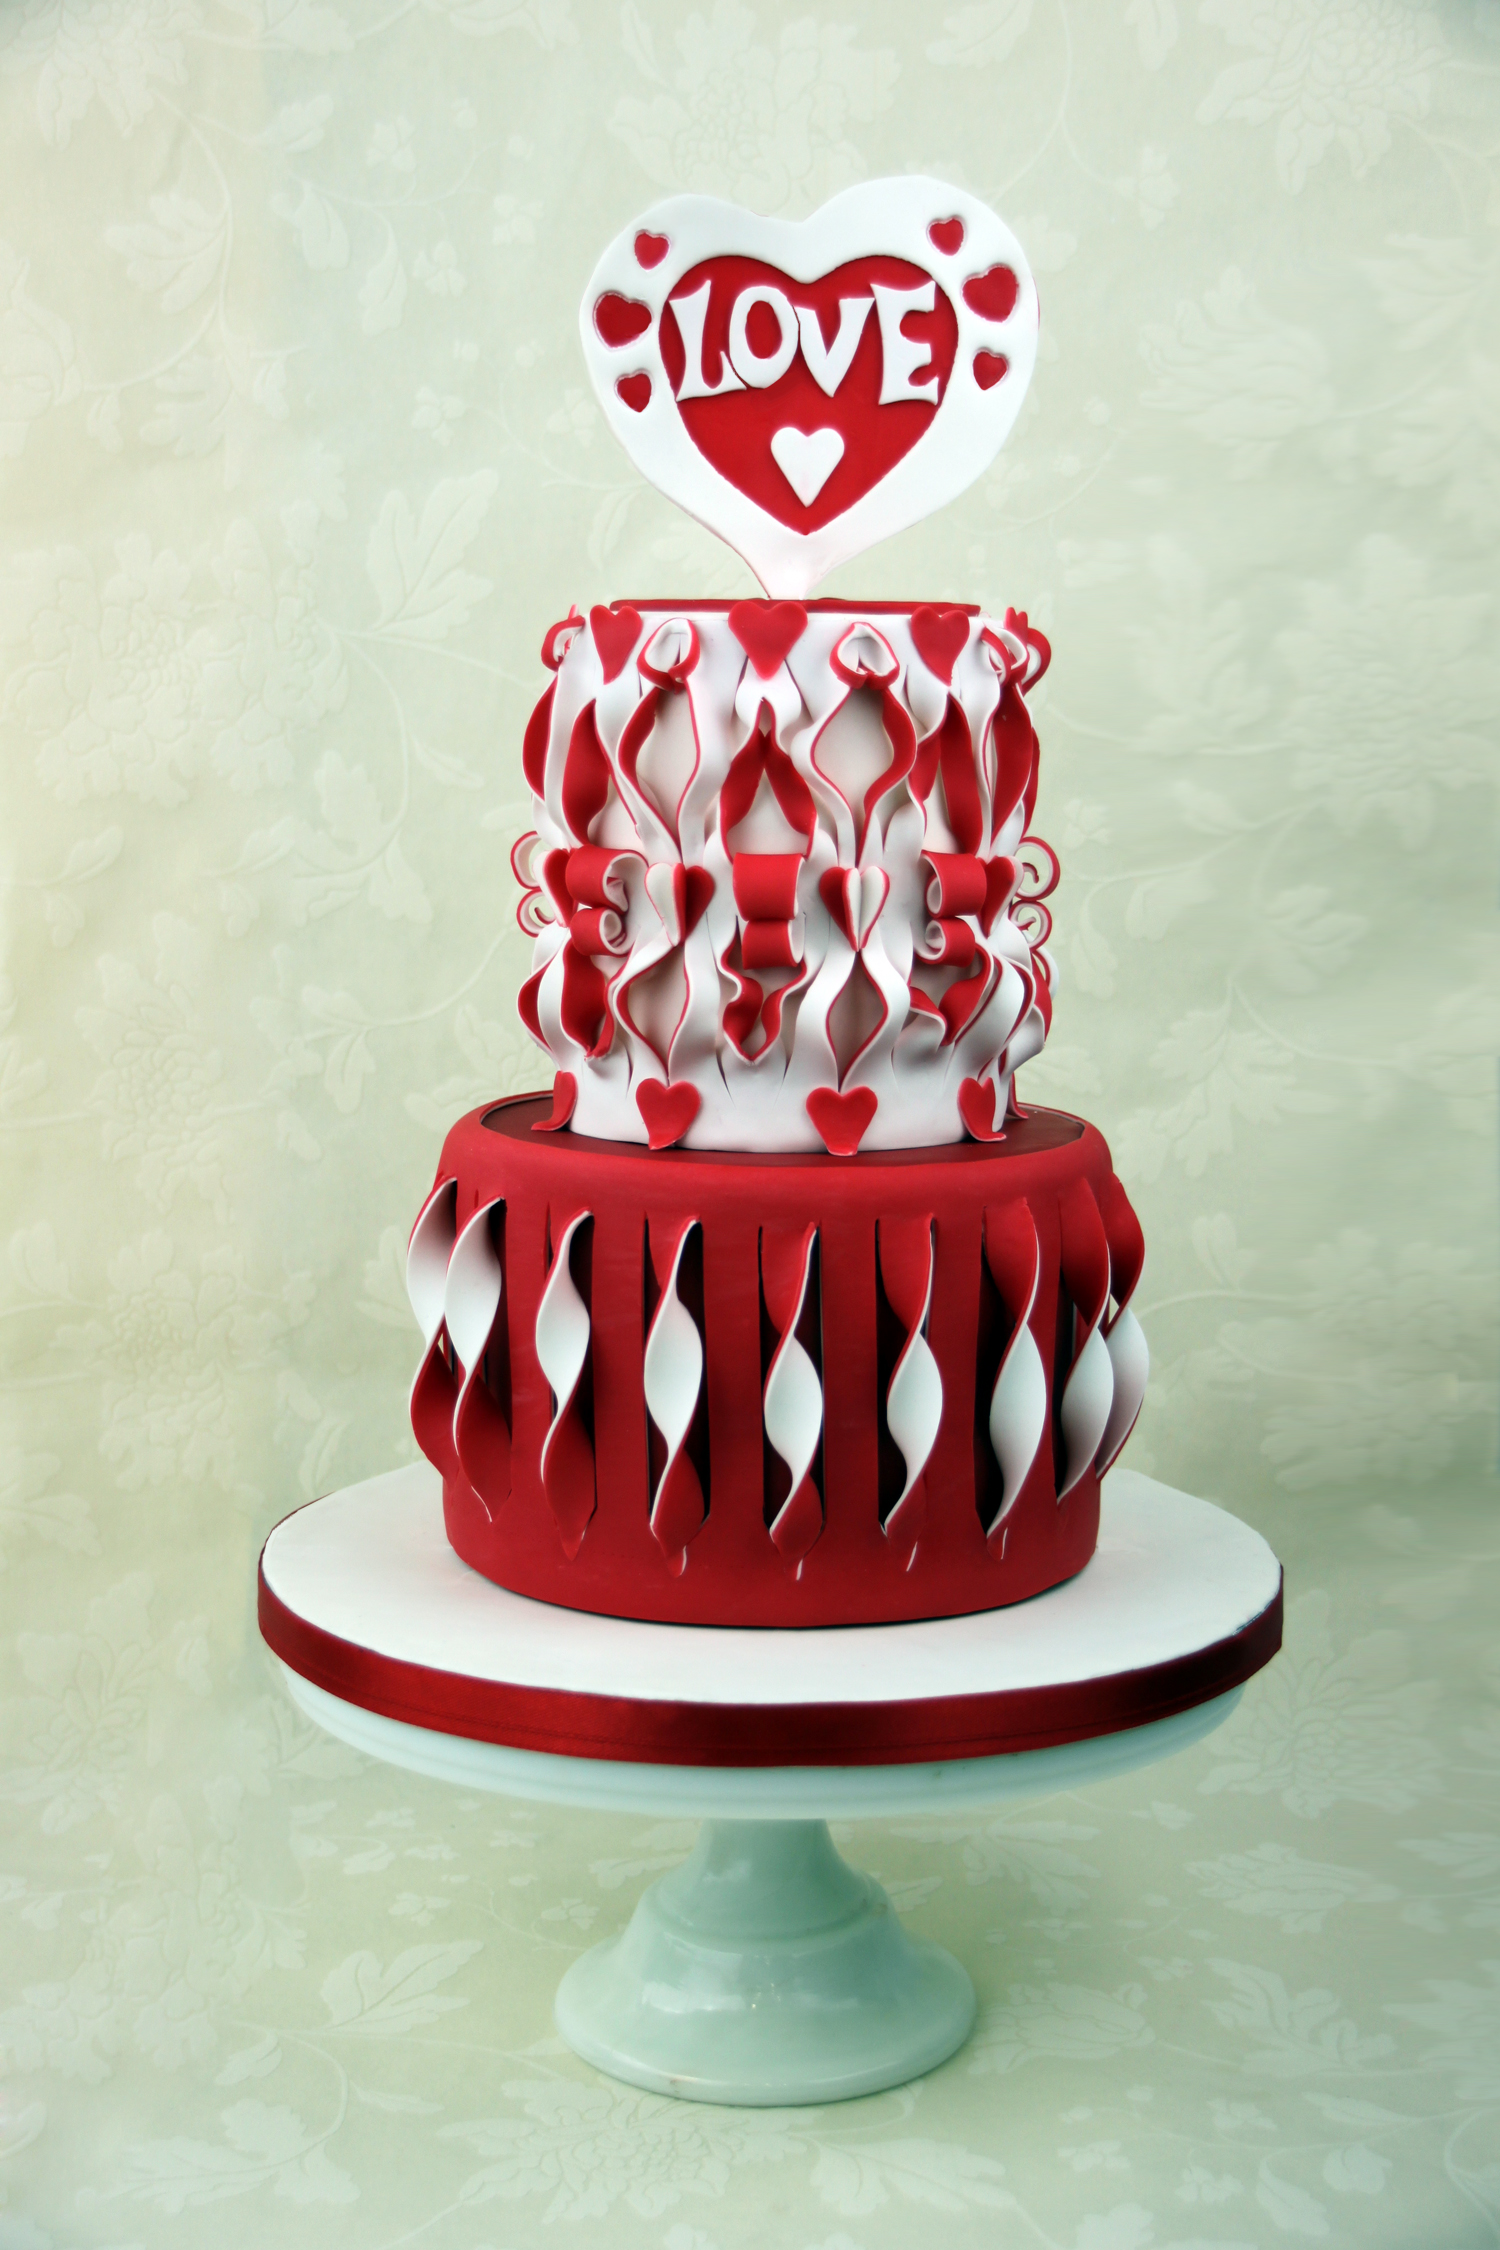 Red and white heart cake